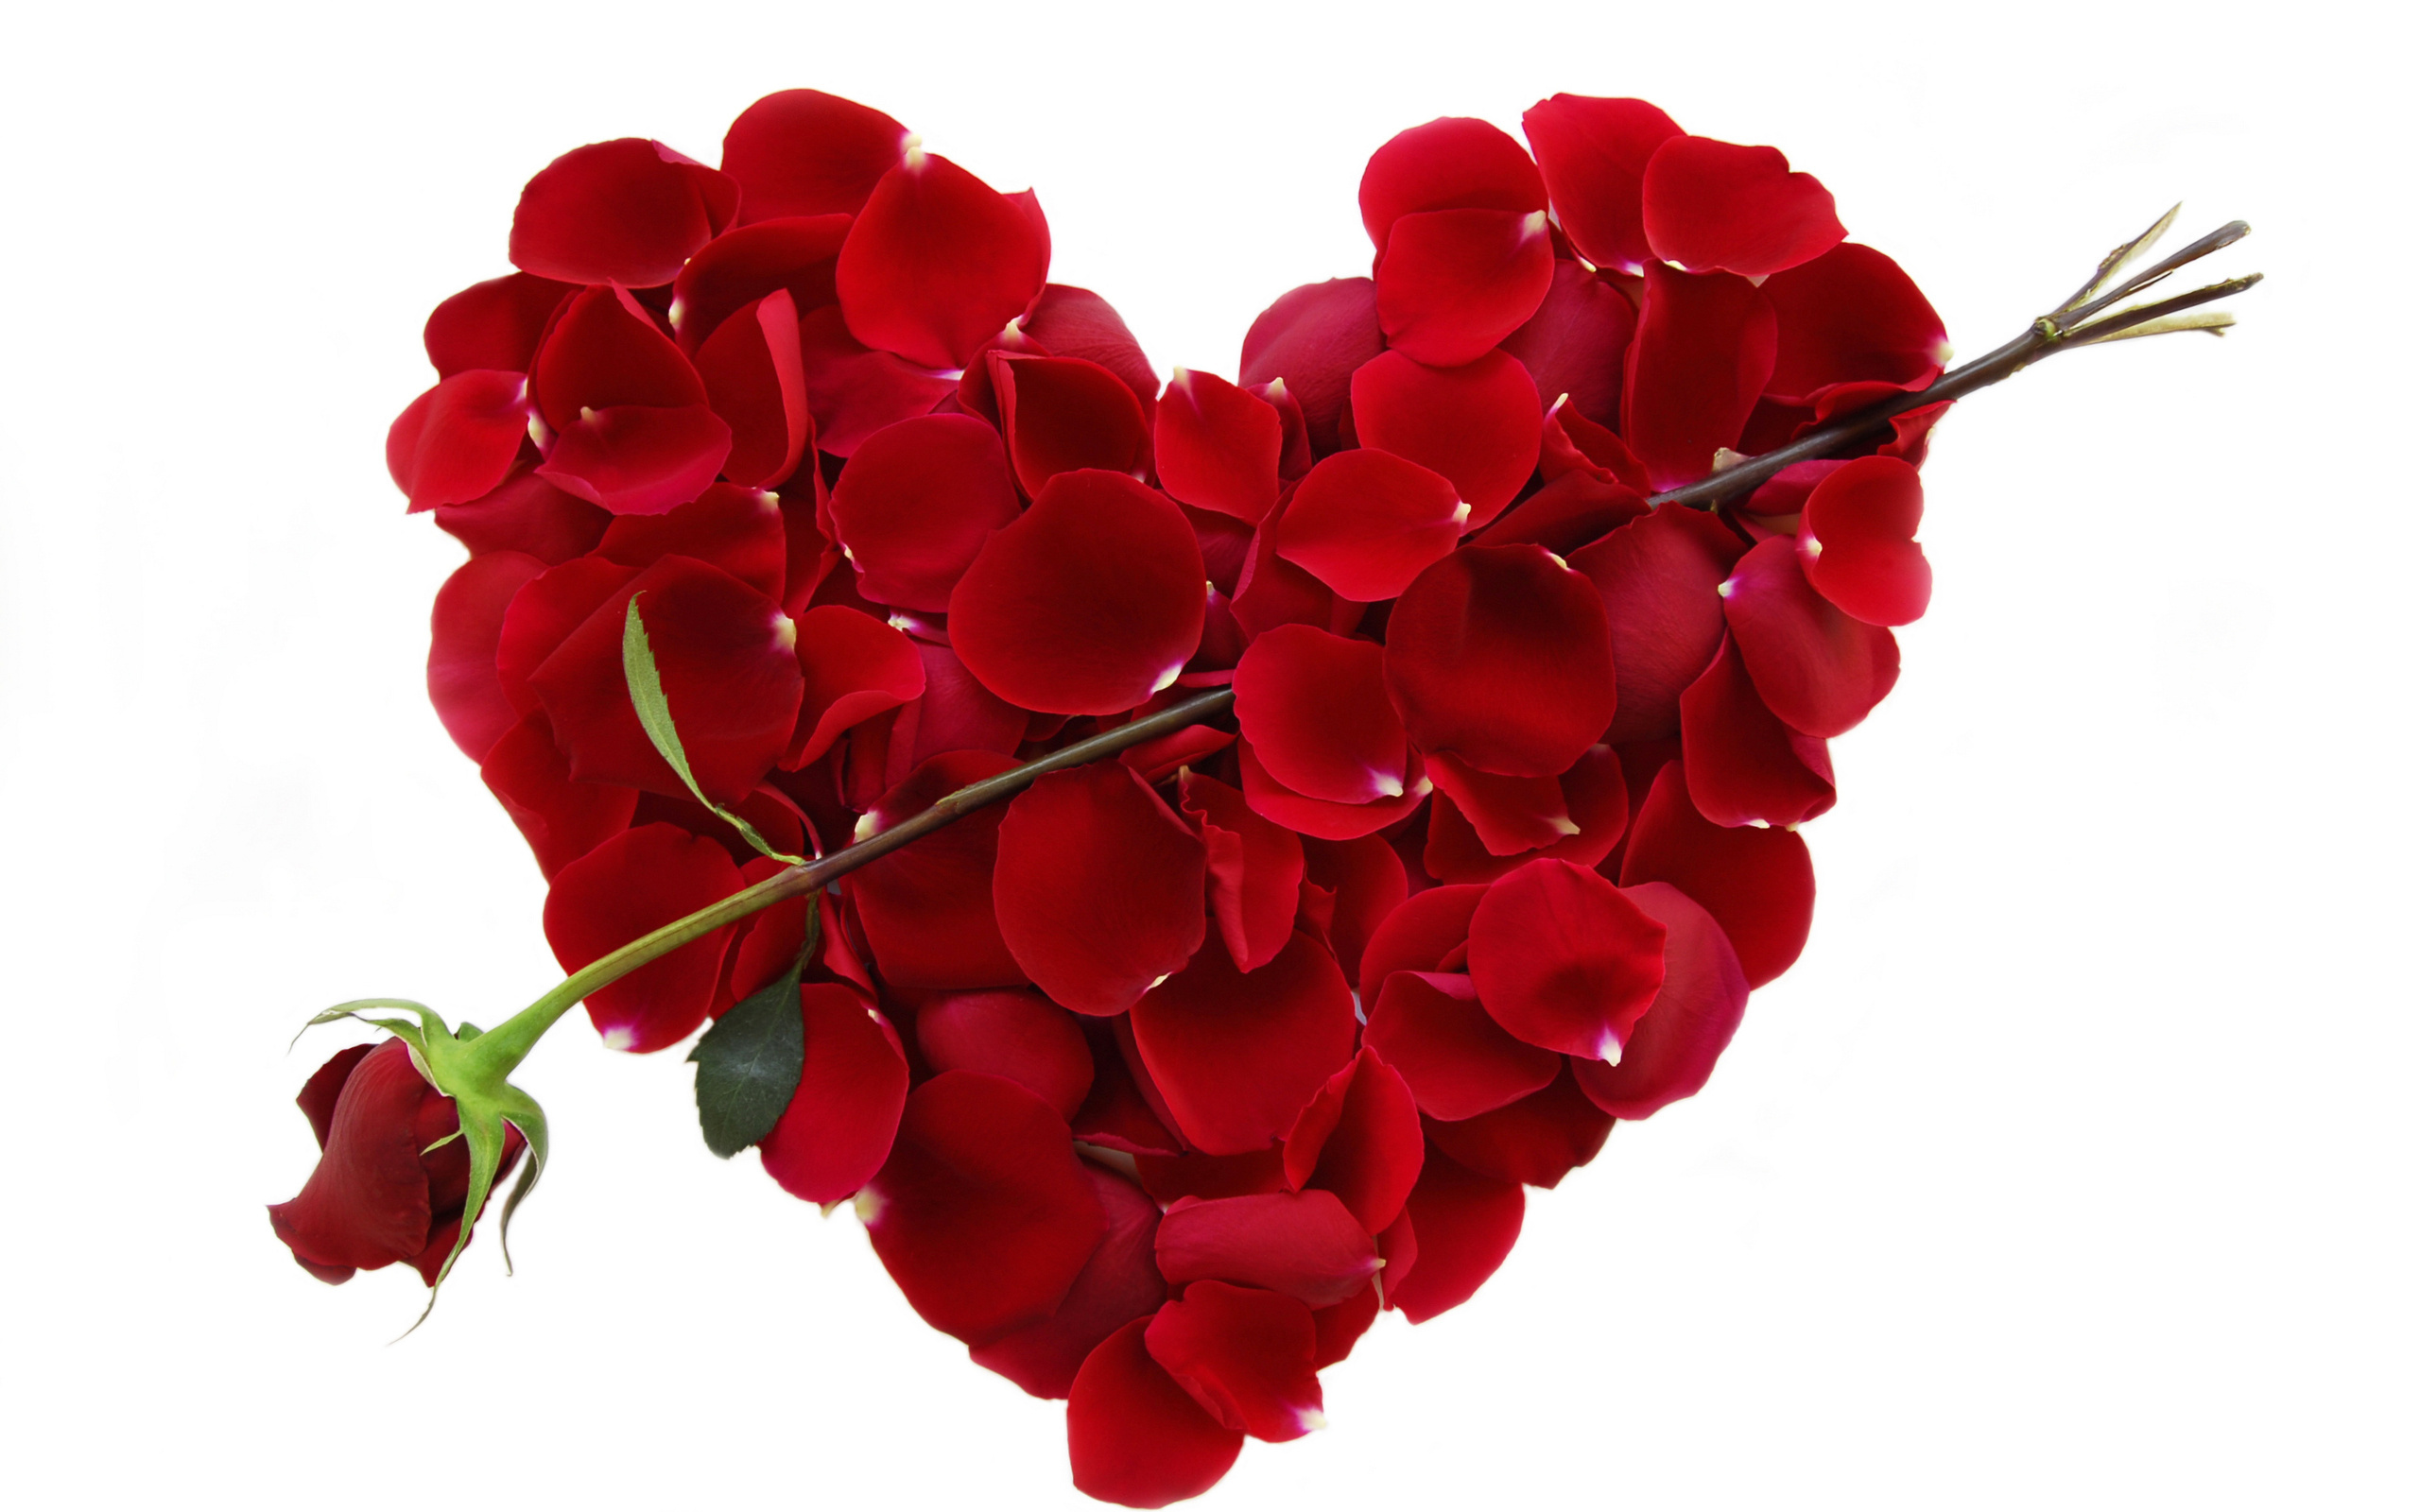 Heart flowers hd